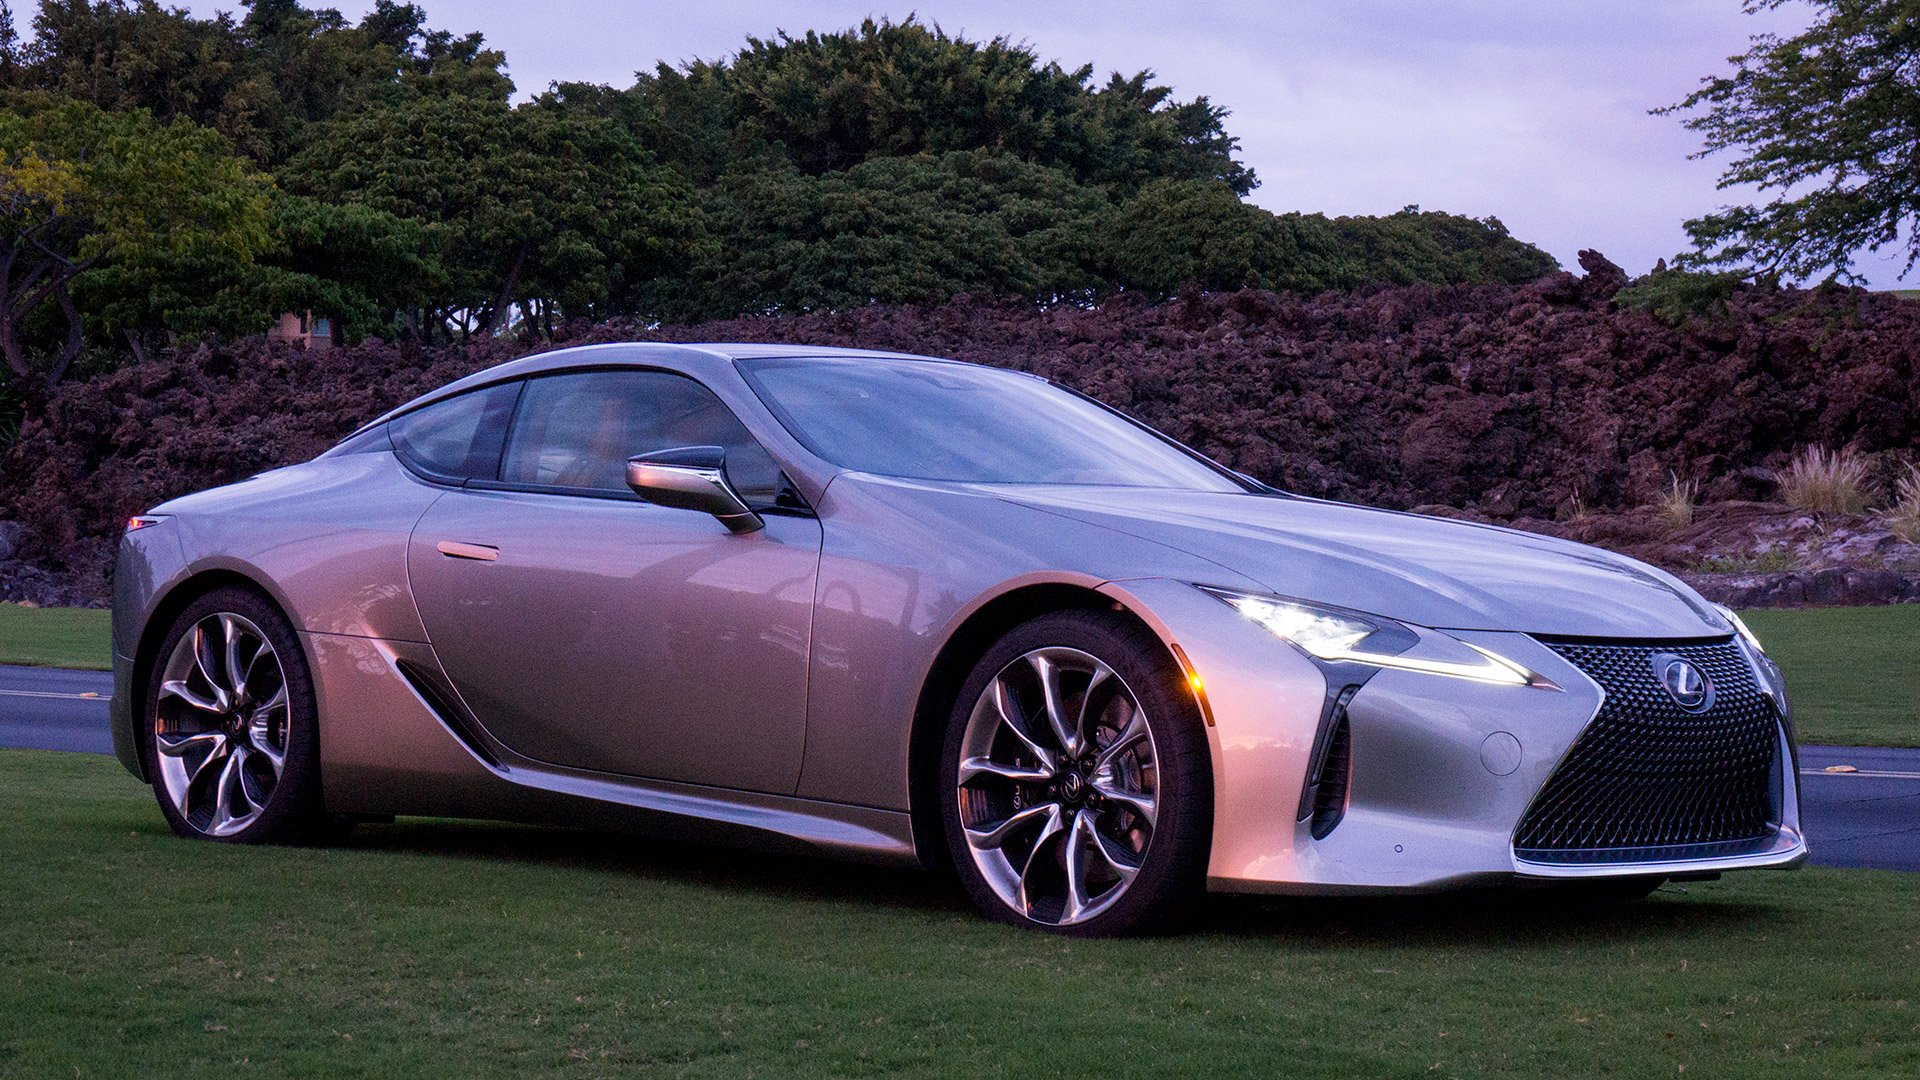 2018 lexus lc. Unique 2018 2018 Lexus LC 500 Moves Into The Fast Lane  Throughout Lexus Lc